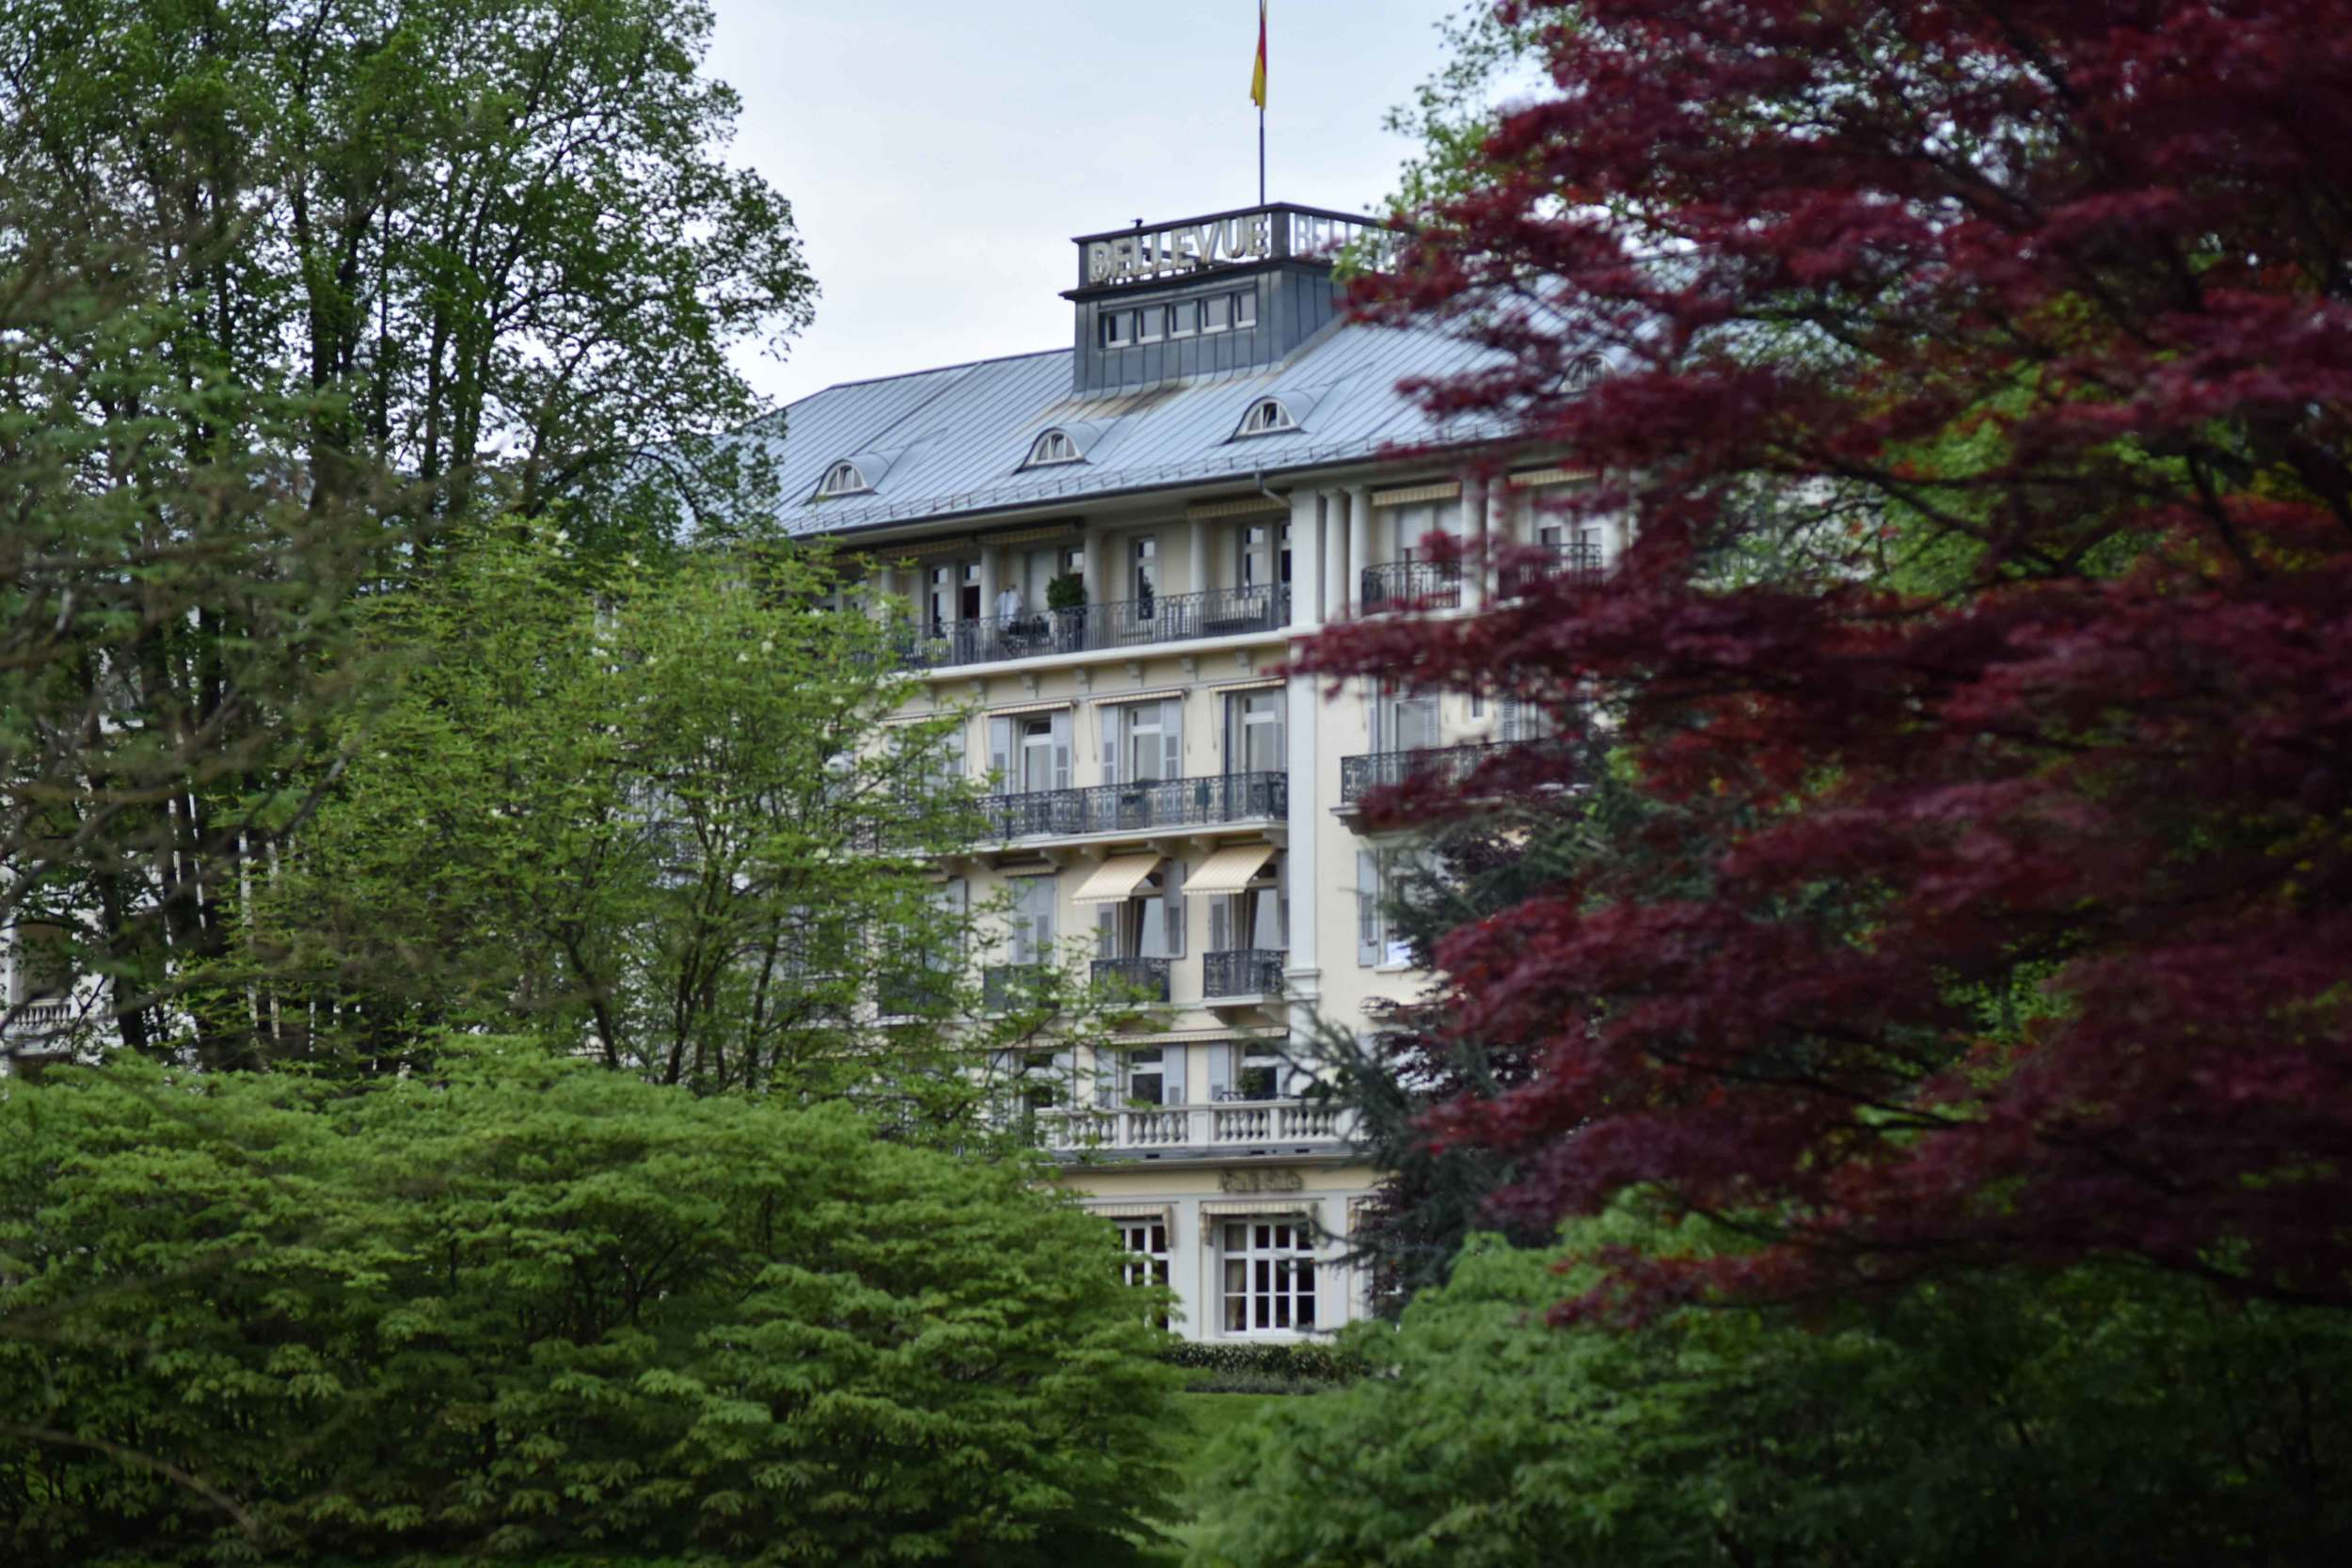 Brenners hotel and spa, Baden Baden, Germany. Image©sourcingstyle.com